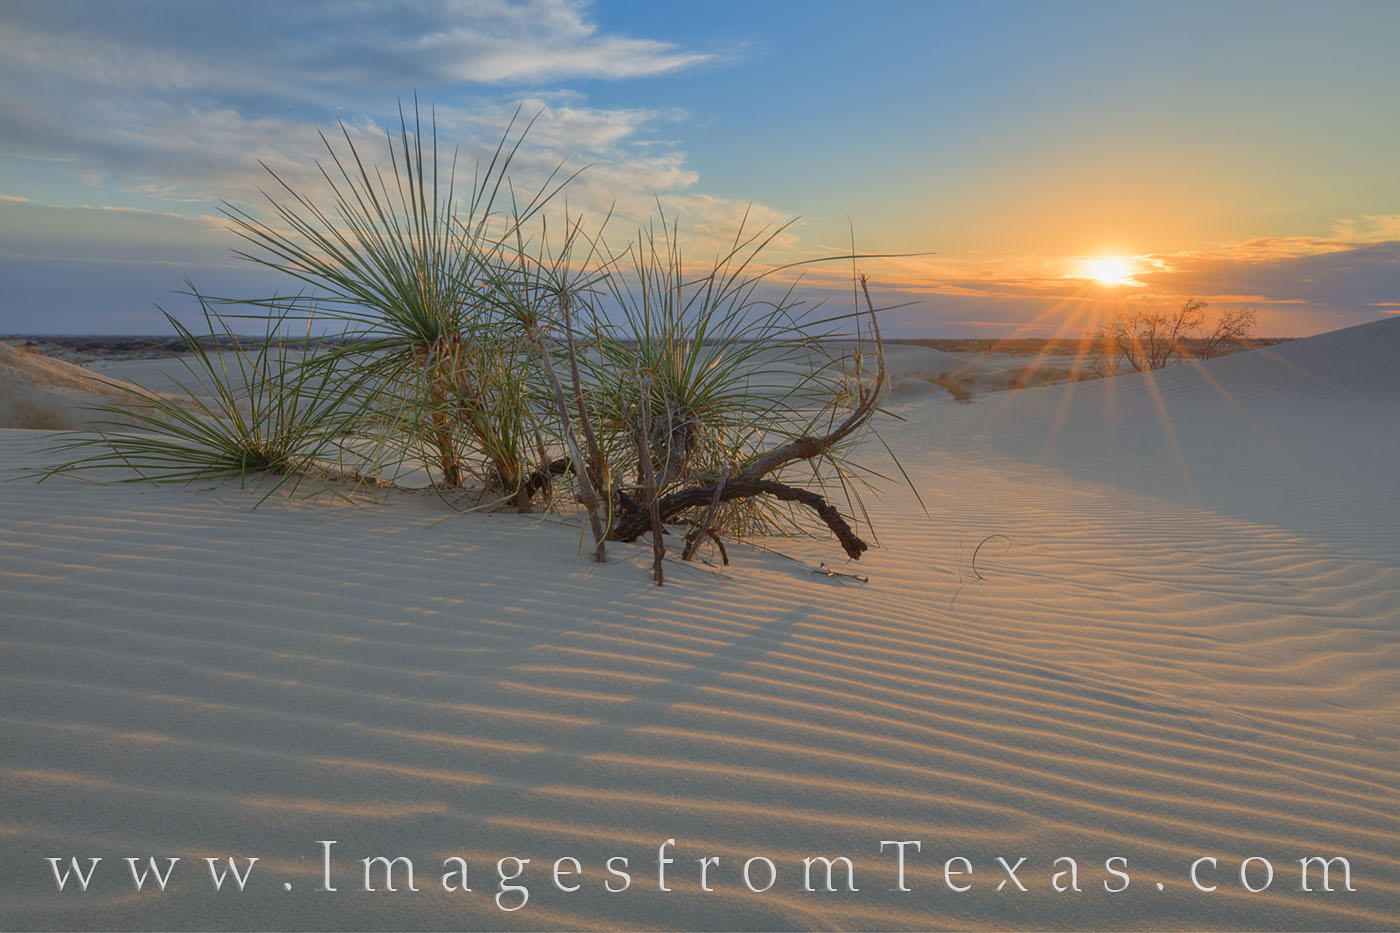 Monahans, sand dunes, sandhills, sand, west texas, sunset, evening, sunburst, yucca, shadows, photo